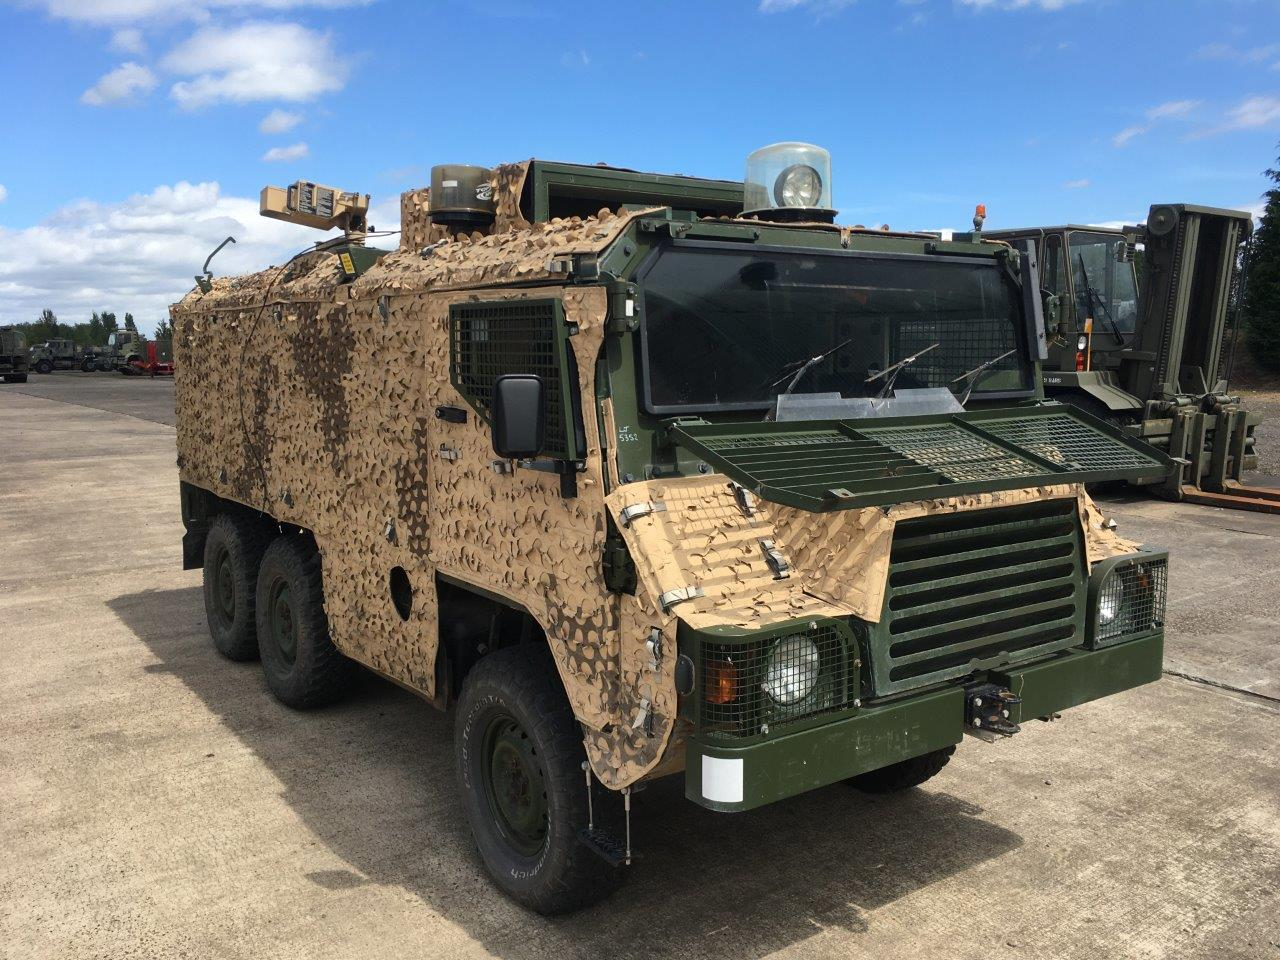 MoD Surplus, ex army military vehicles for sale - Pinzgauer Vector 718 6×6 Armoured Patrol Vehicles